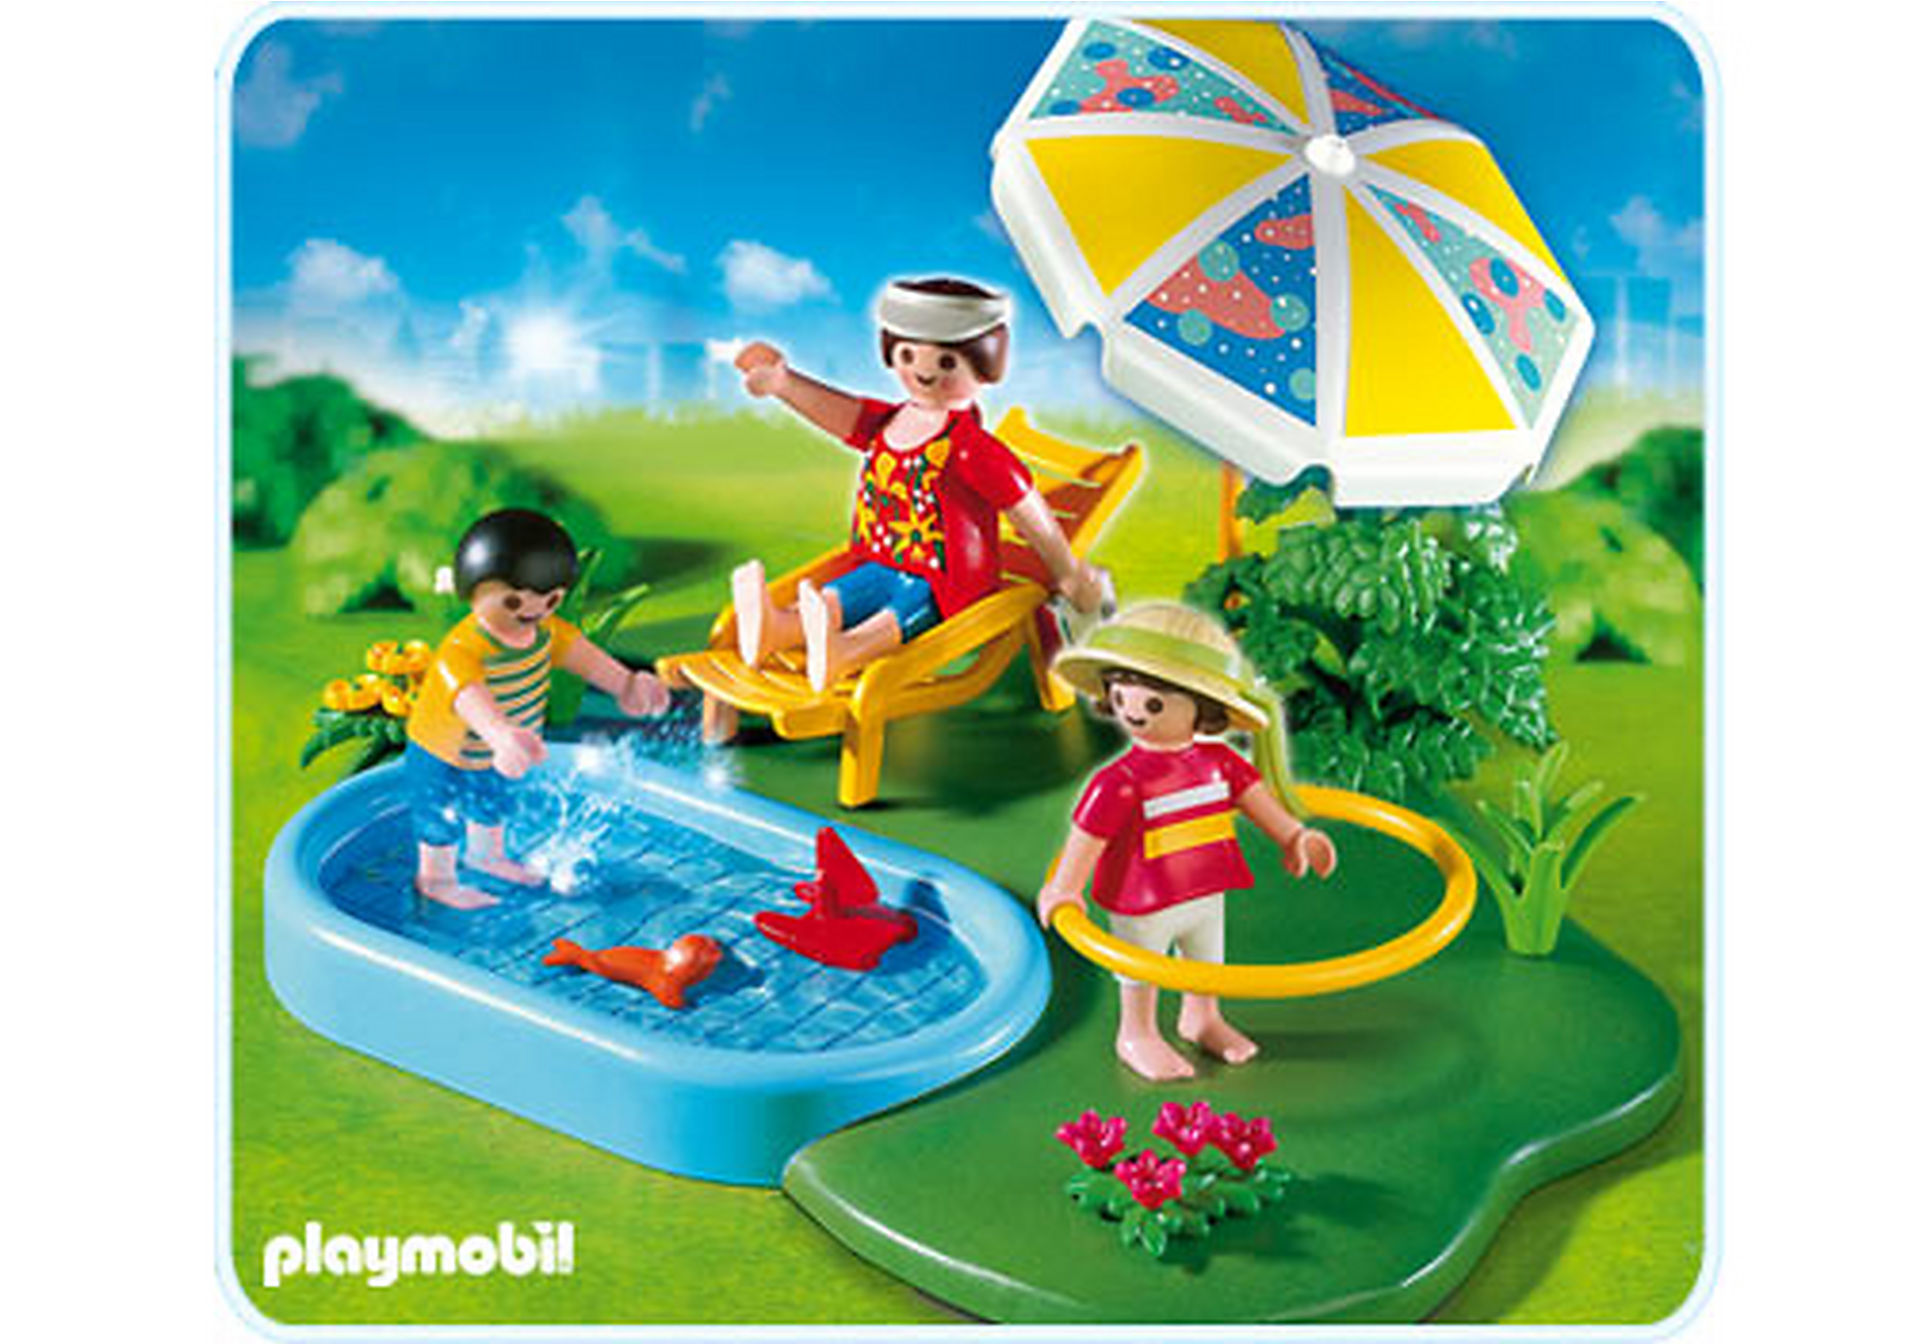 http://media.playmobil.com/i/playmobil/4140-A_product_detail/CompactSet Famille et piscine